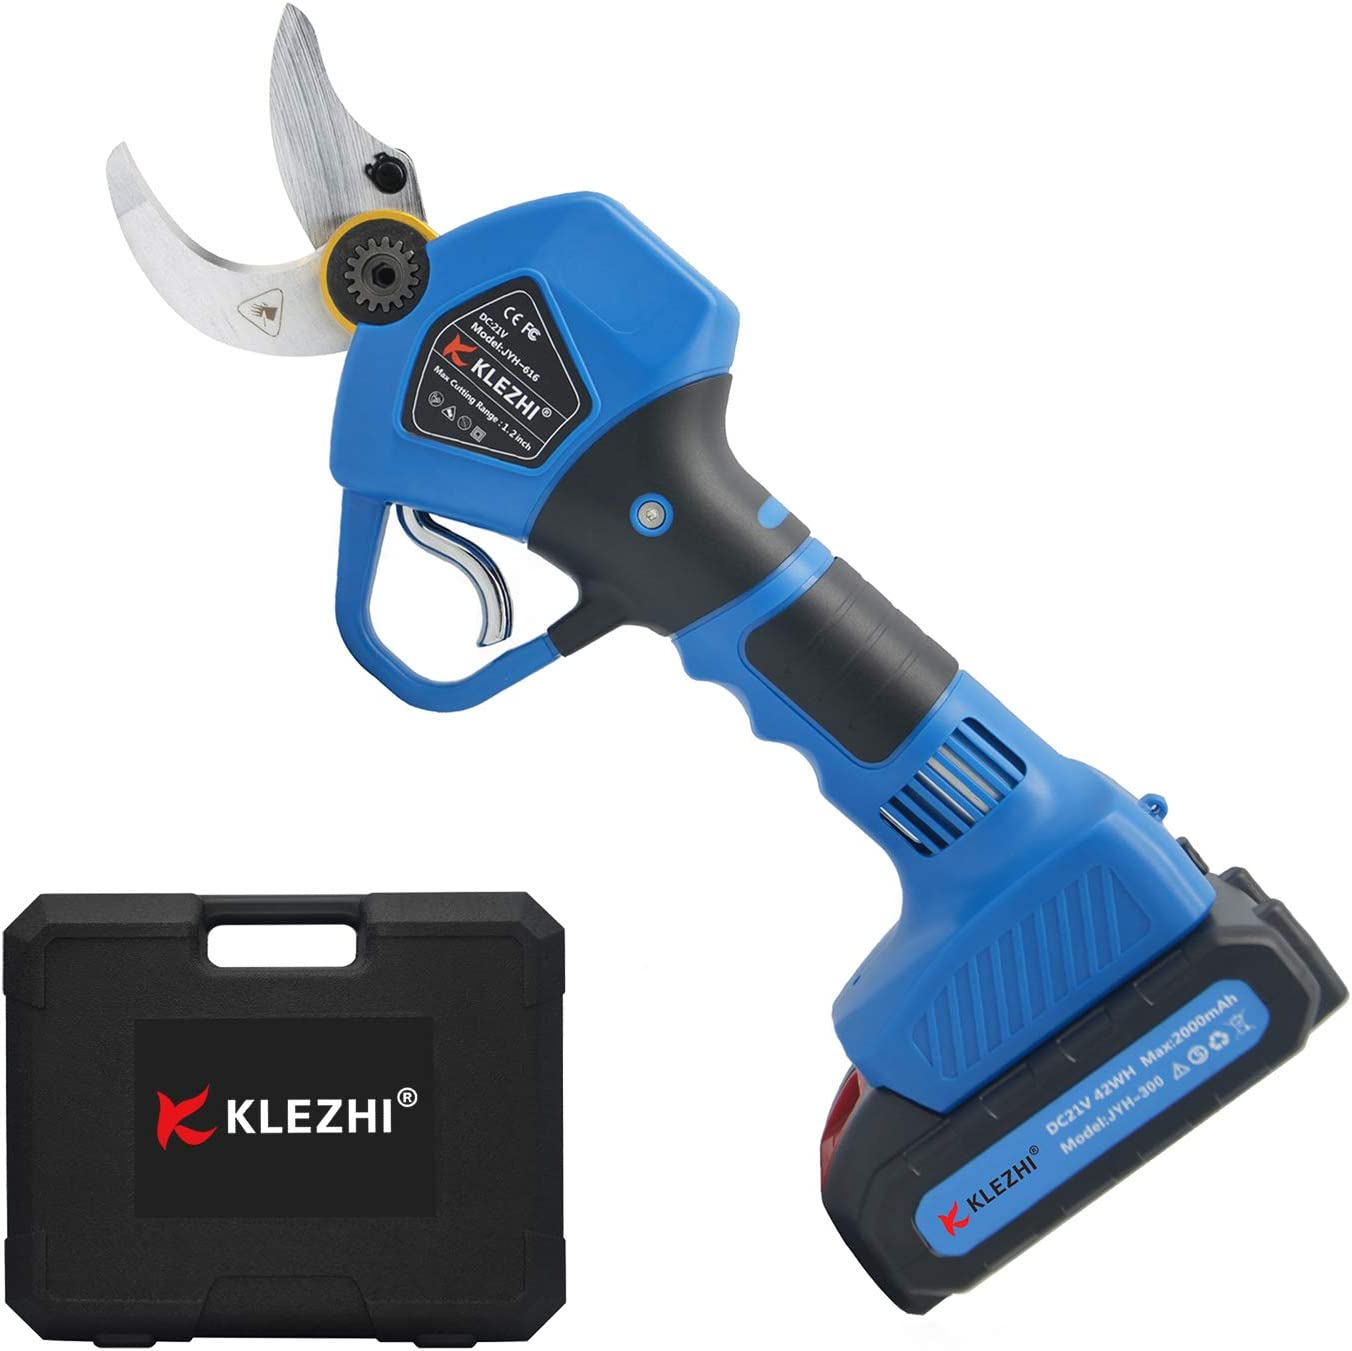 K KLEZHI Professional Cordless Electric Pruning Shears with 2 PCS Backup Rechargeable 2Ah Lithium Battery Powered Tree Branch Pruner, 30mm (1.2 Inch) Cutting Diameter, 6-8 Working Hours